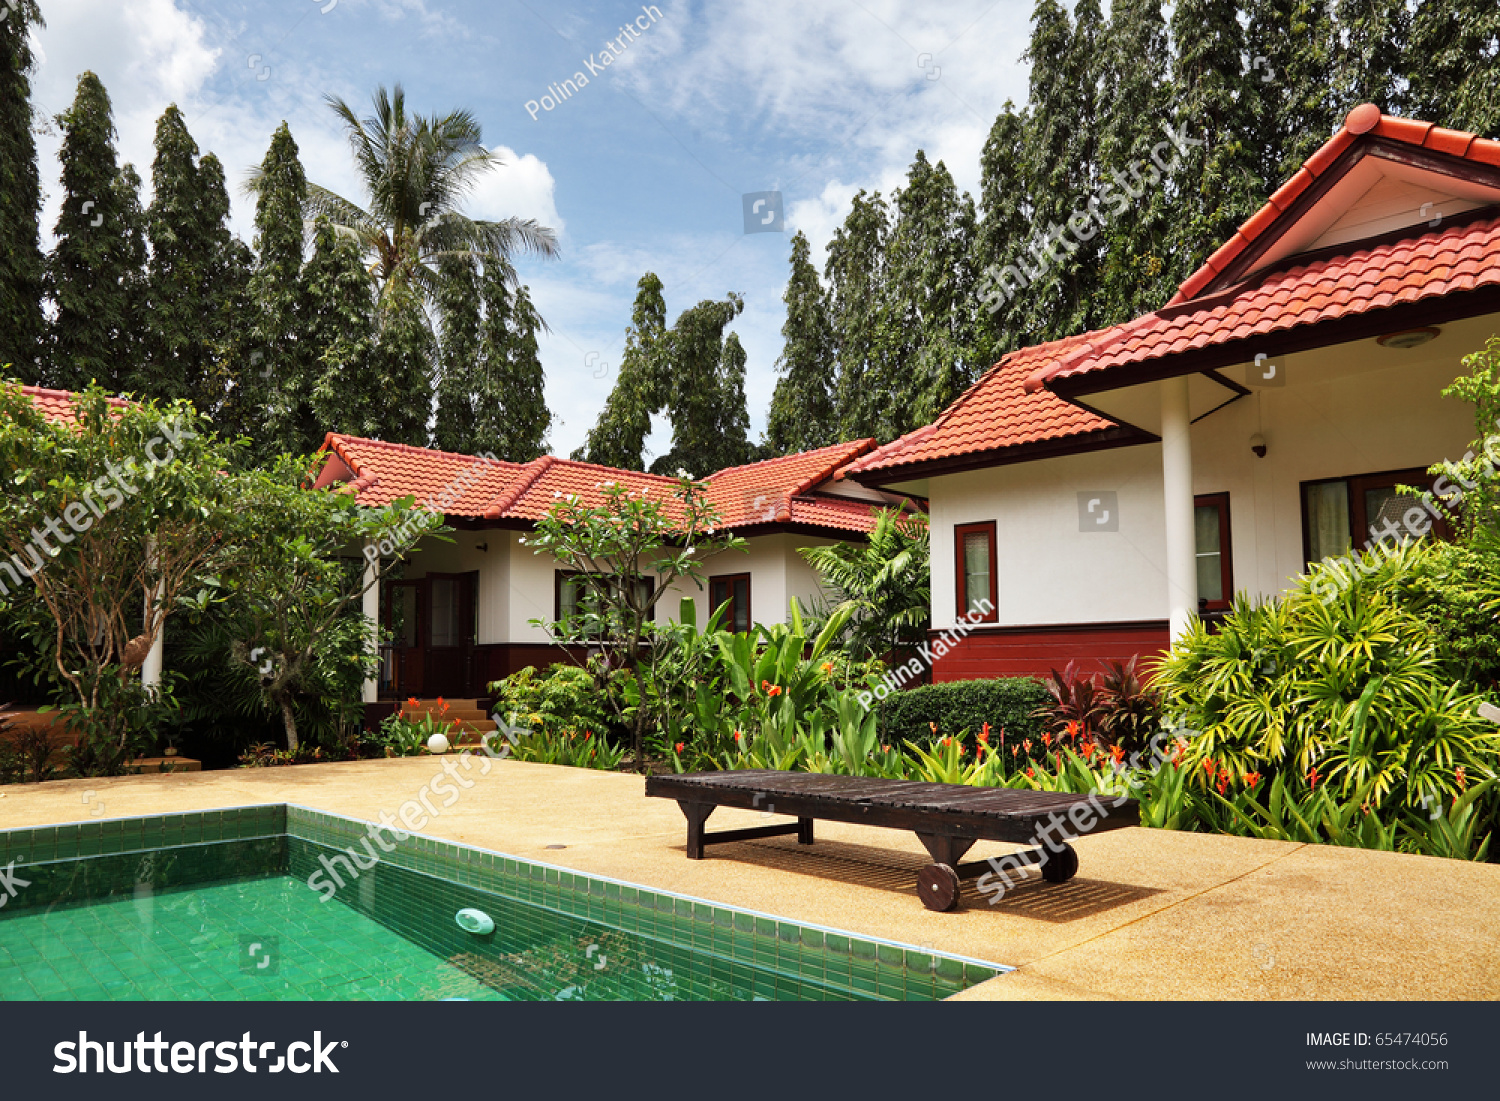 Beautiful Garden Pictures Houses i cant wait until i can have a cute little garden shed Tropical Houses With Beautiful Garden And Pool